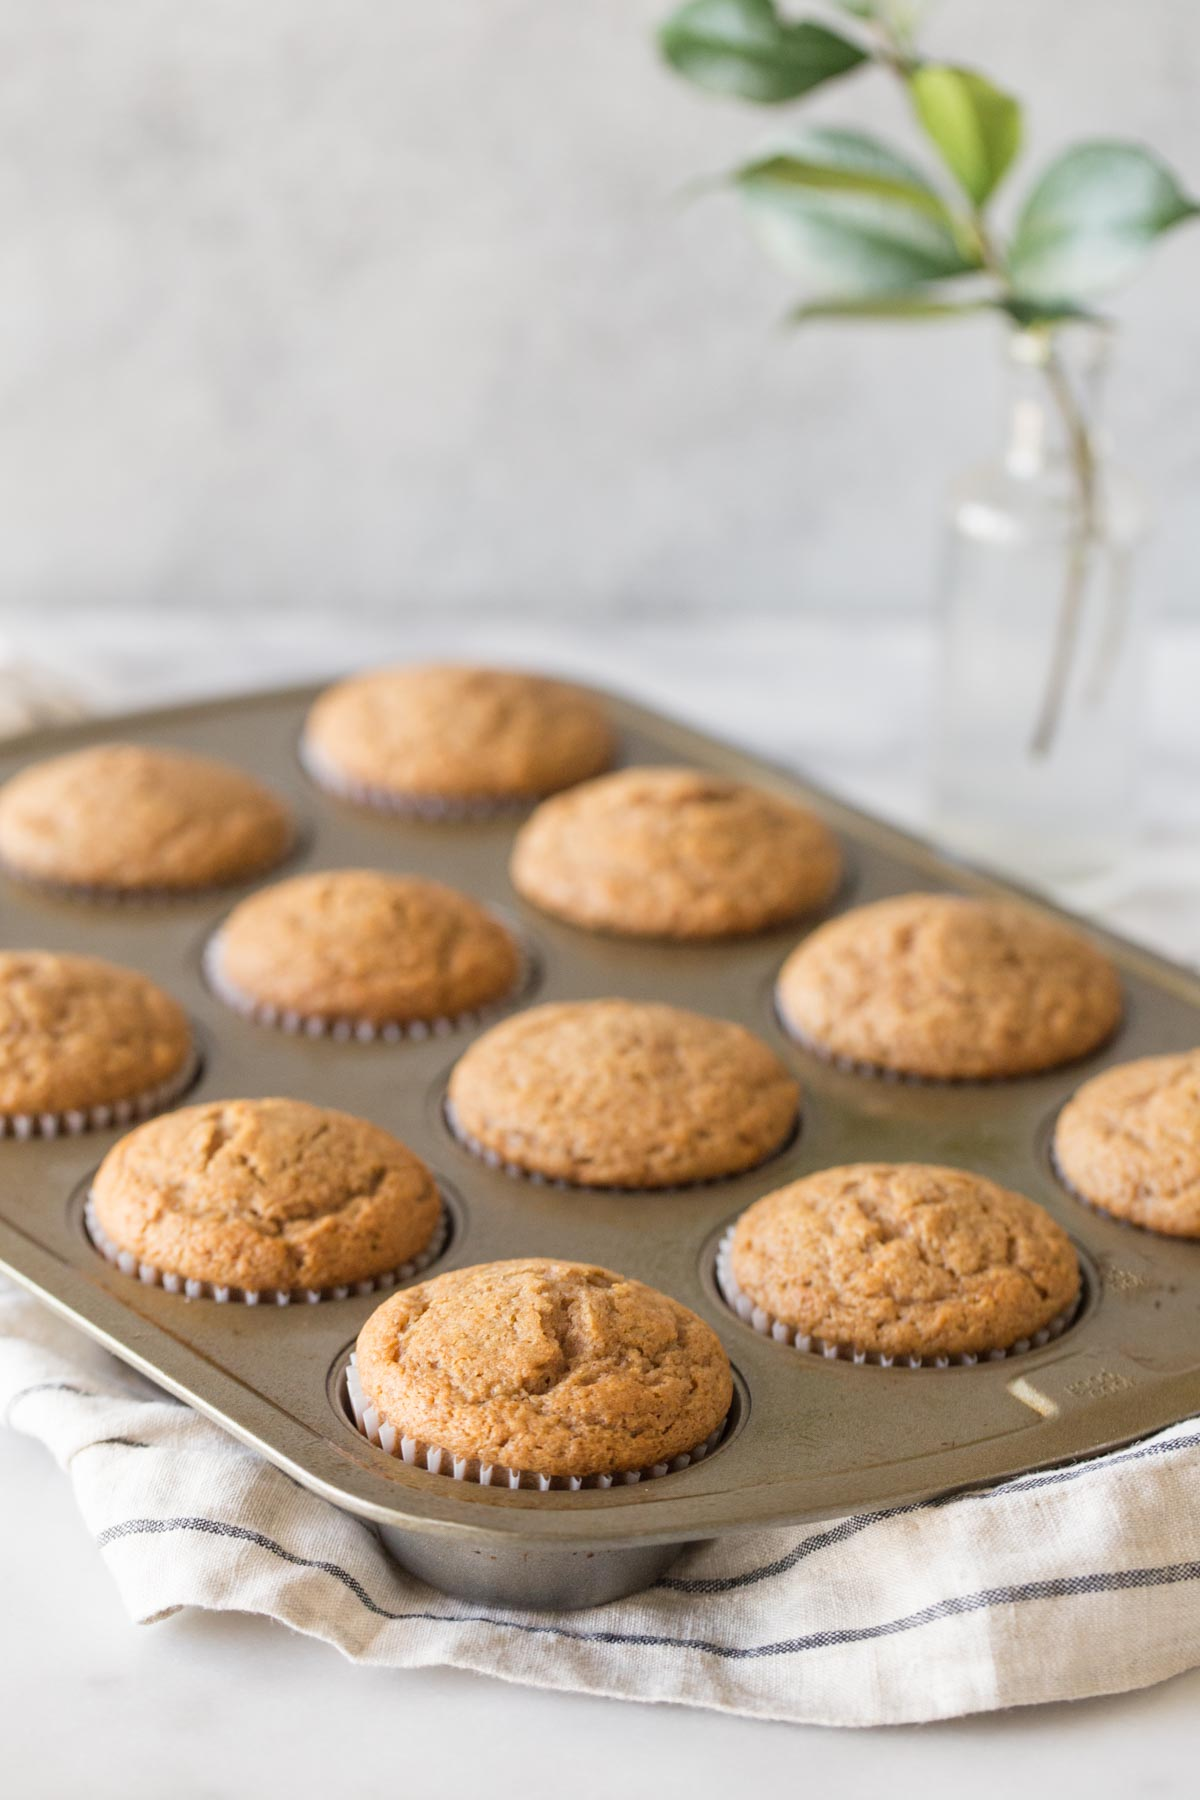 A muffin tin full of Cinnamon Applesauce Muffins with a white marble background.